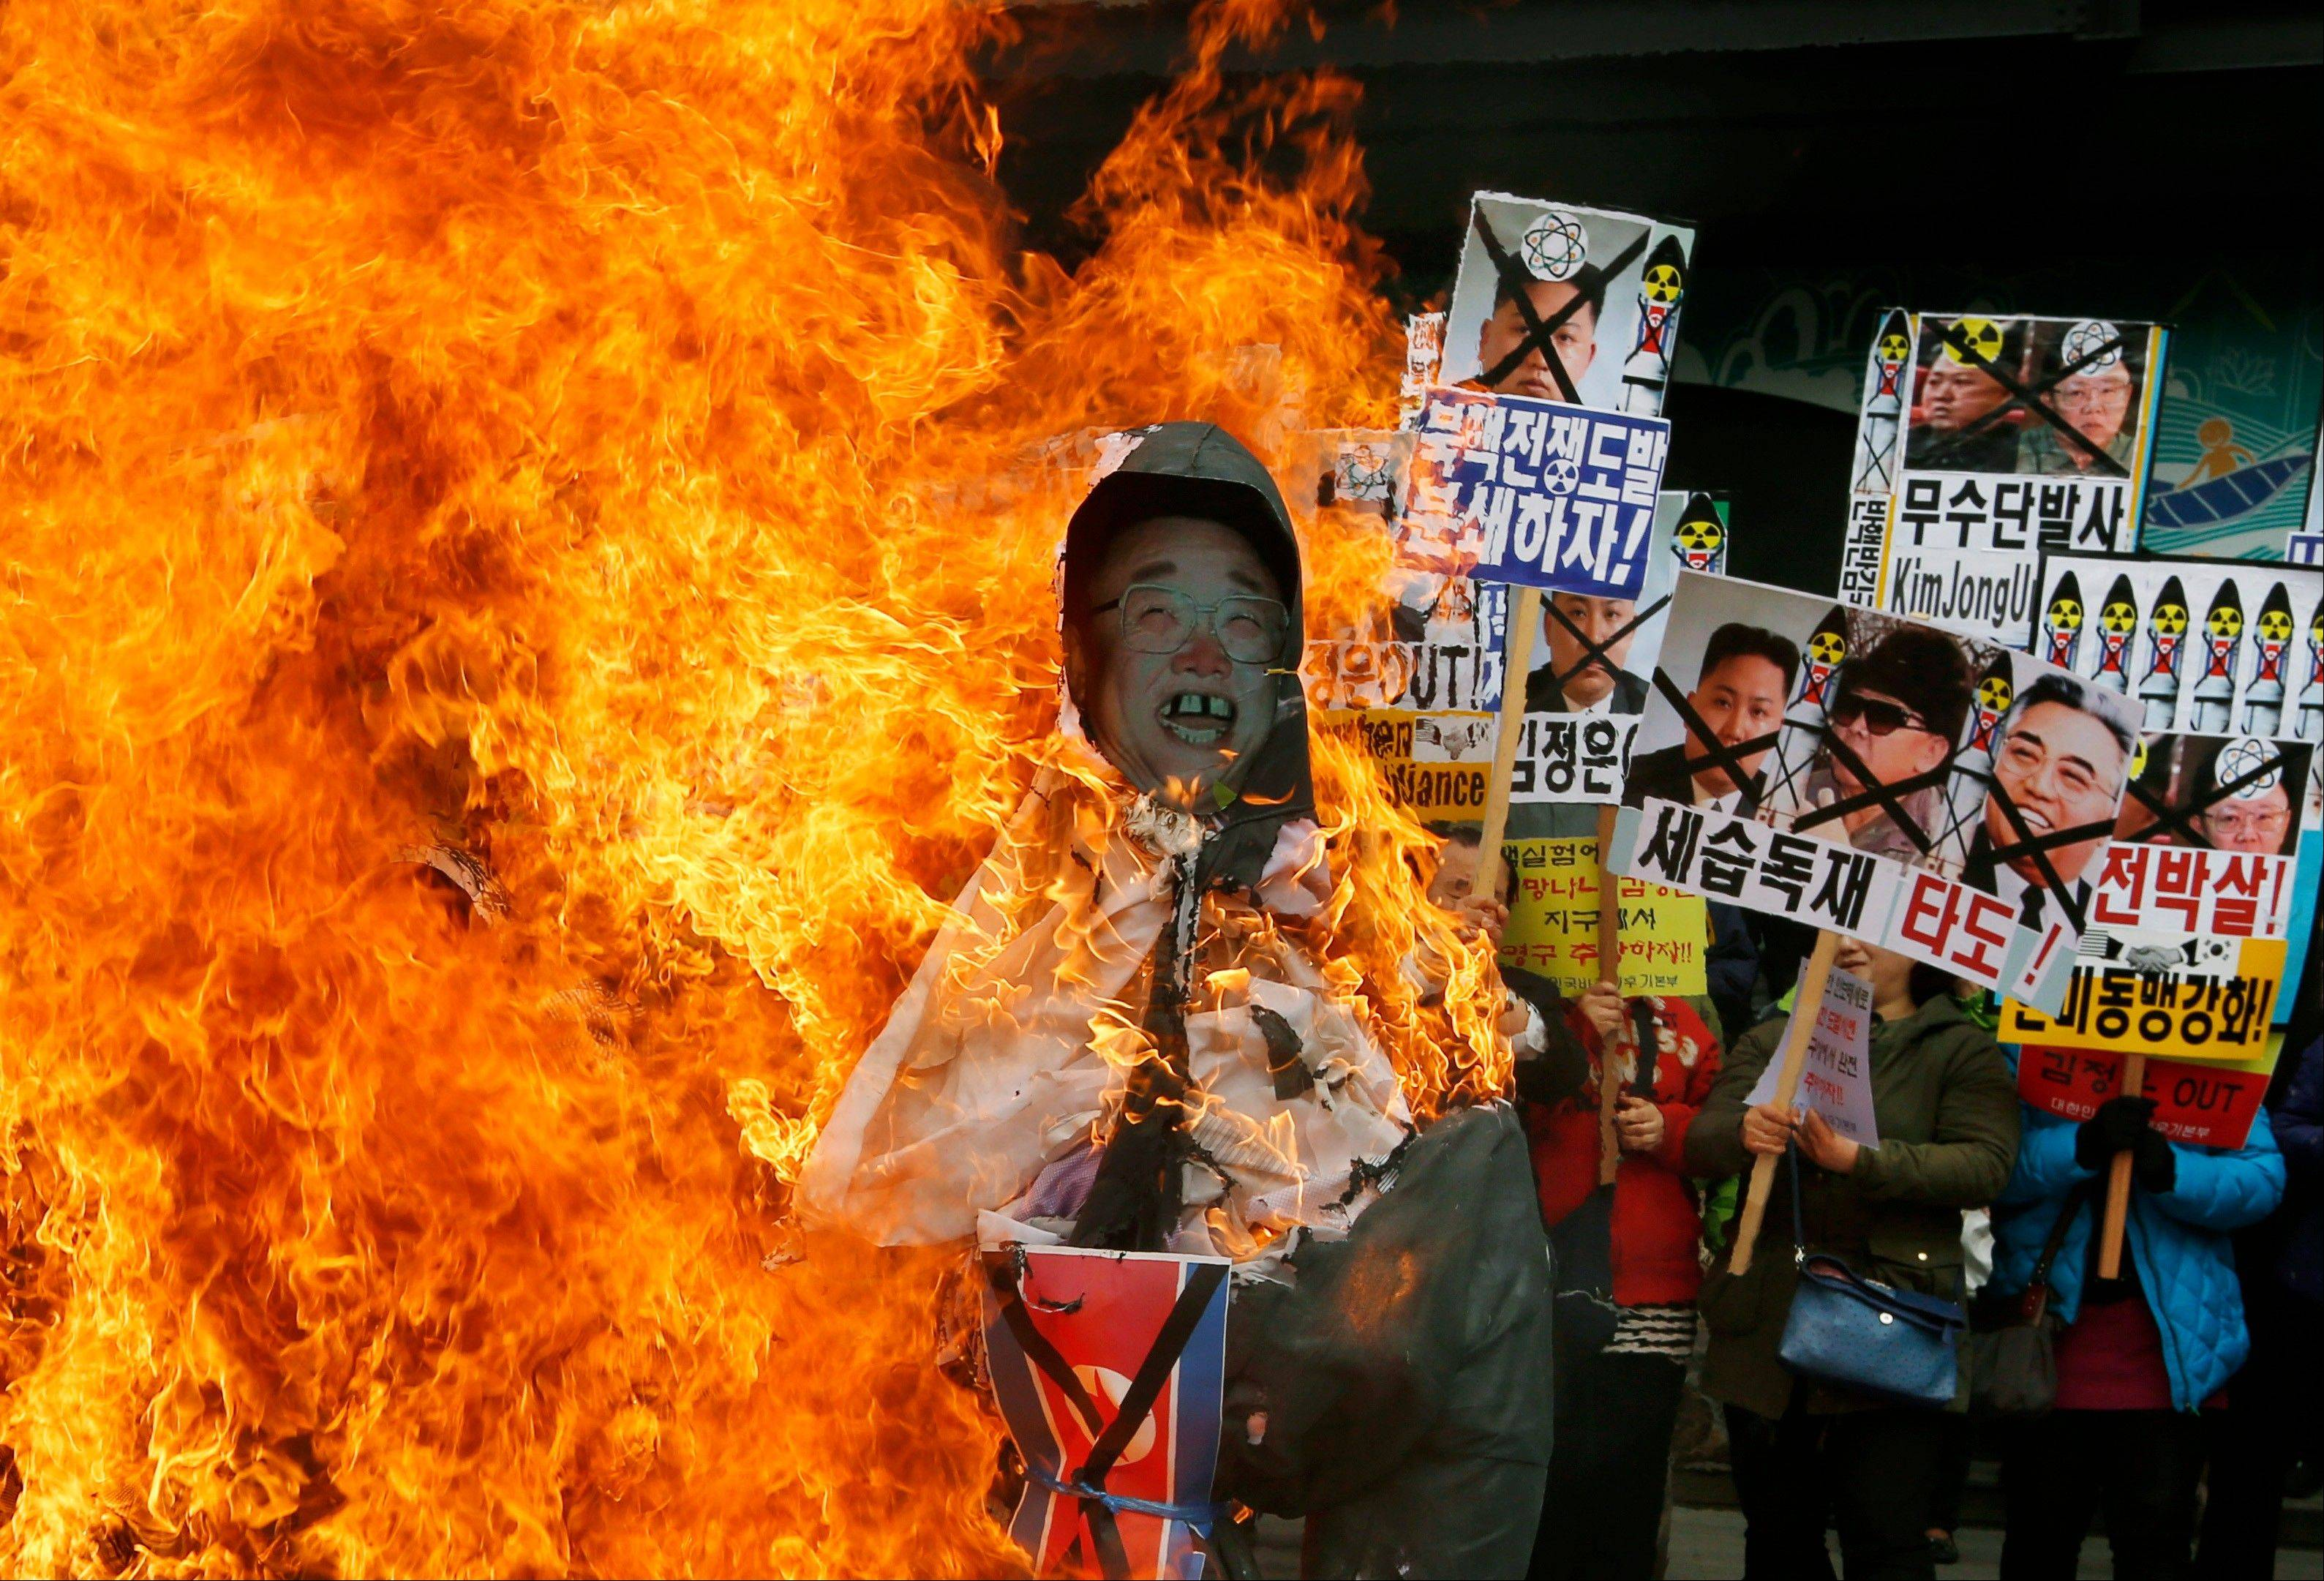 "South Korean protesters burn effigies of North Korean leader Kim Jong-Un, and late leaders Kim Jong Il and Kim Il Sung at an anti-North Korea protest on the birthday of Kim Il Sung in Seoul, South Korea. North Korea lashed out anew Tuesday, April 16, 2013 at South Korea over the small public protest, saying it would not hold talks with its southern neighbor unless it apologized for anti-North Korean actions ""big and small."" The sign at center showing images of the Kim family reads ""Throw Them Out."""